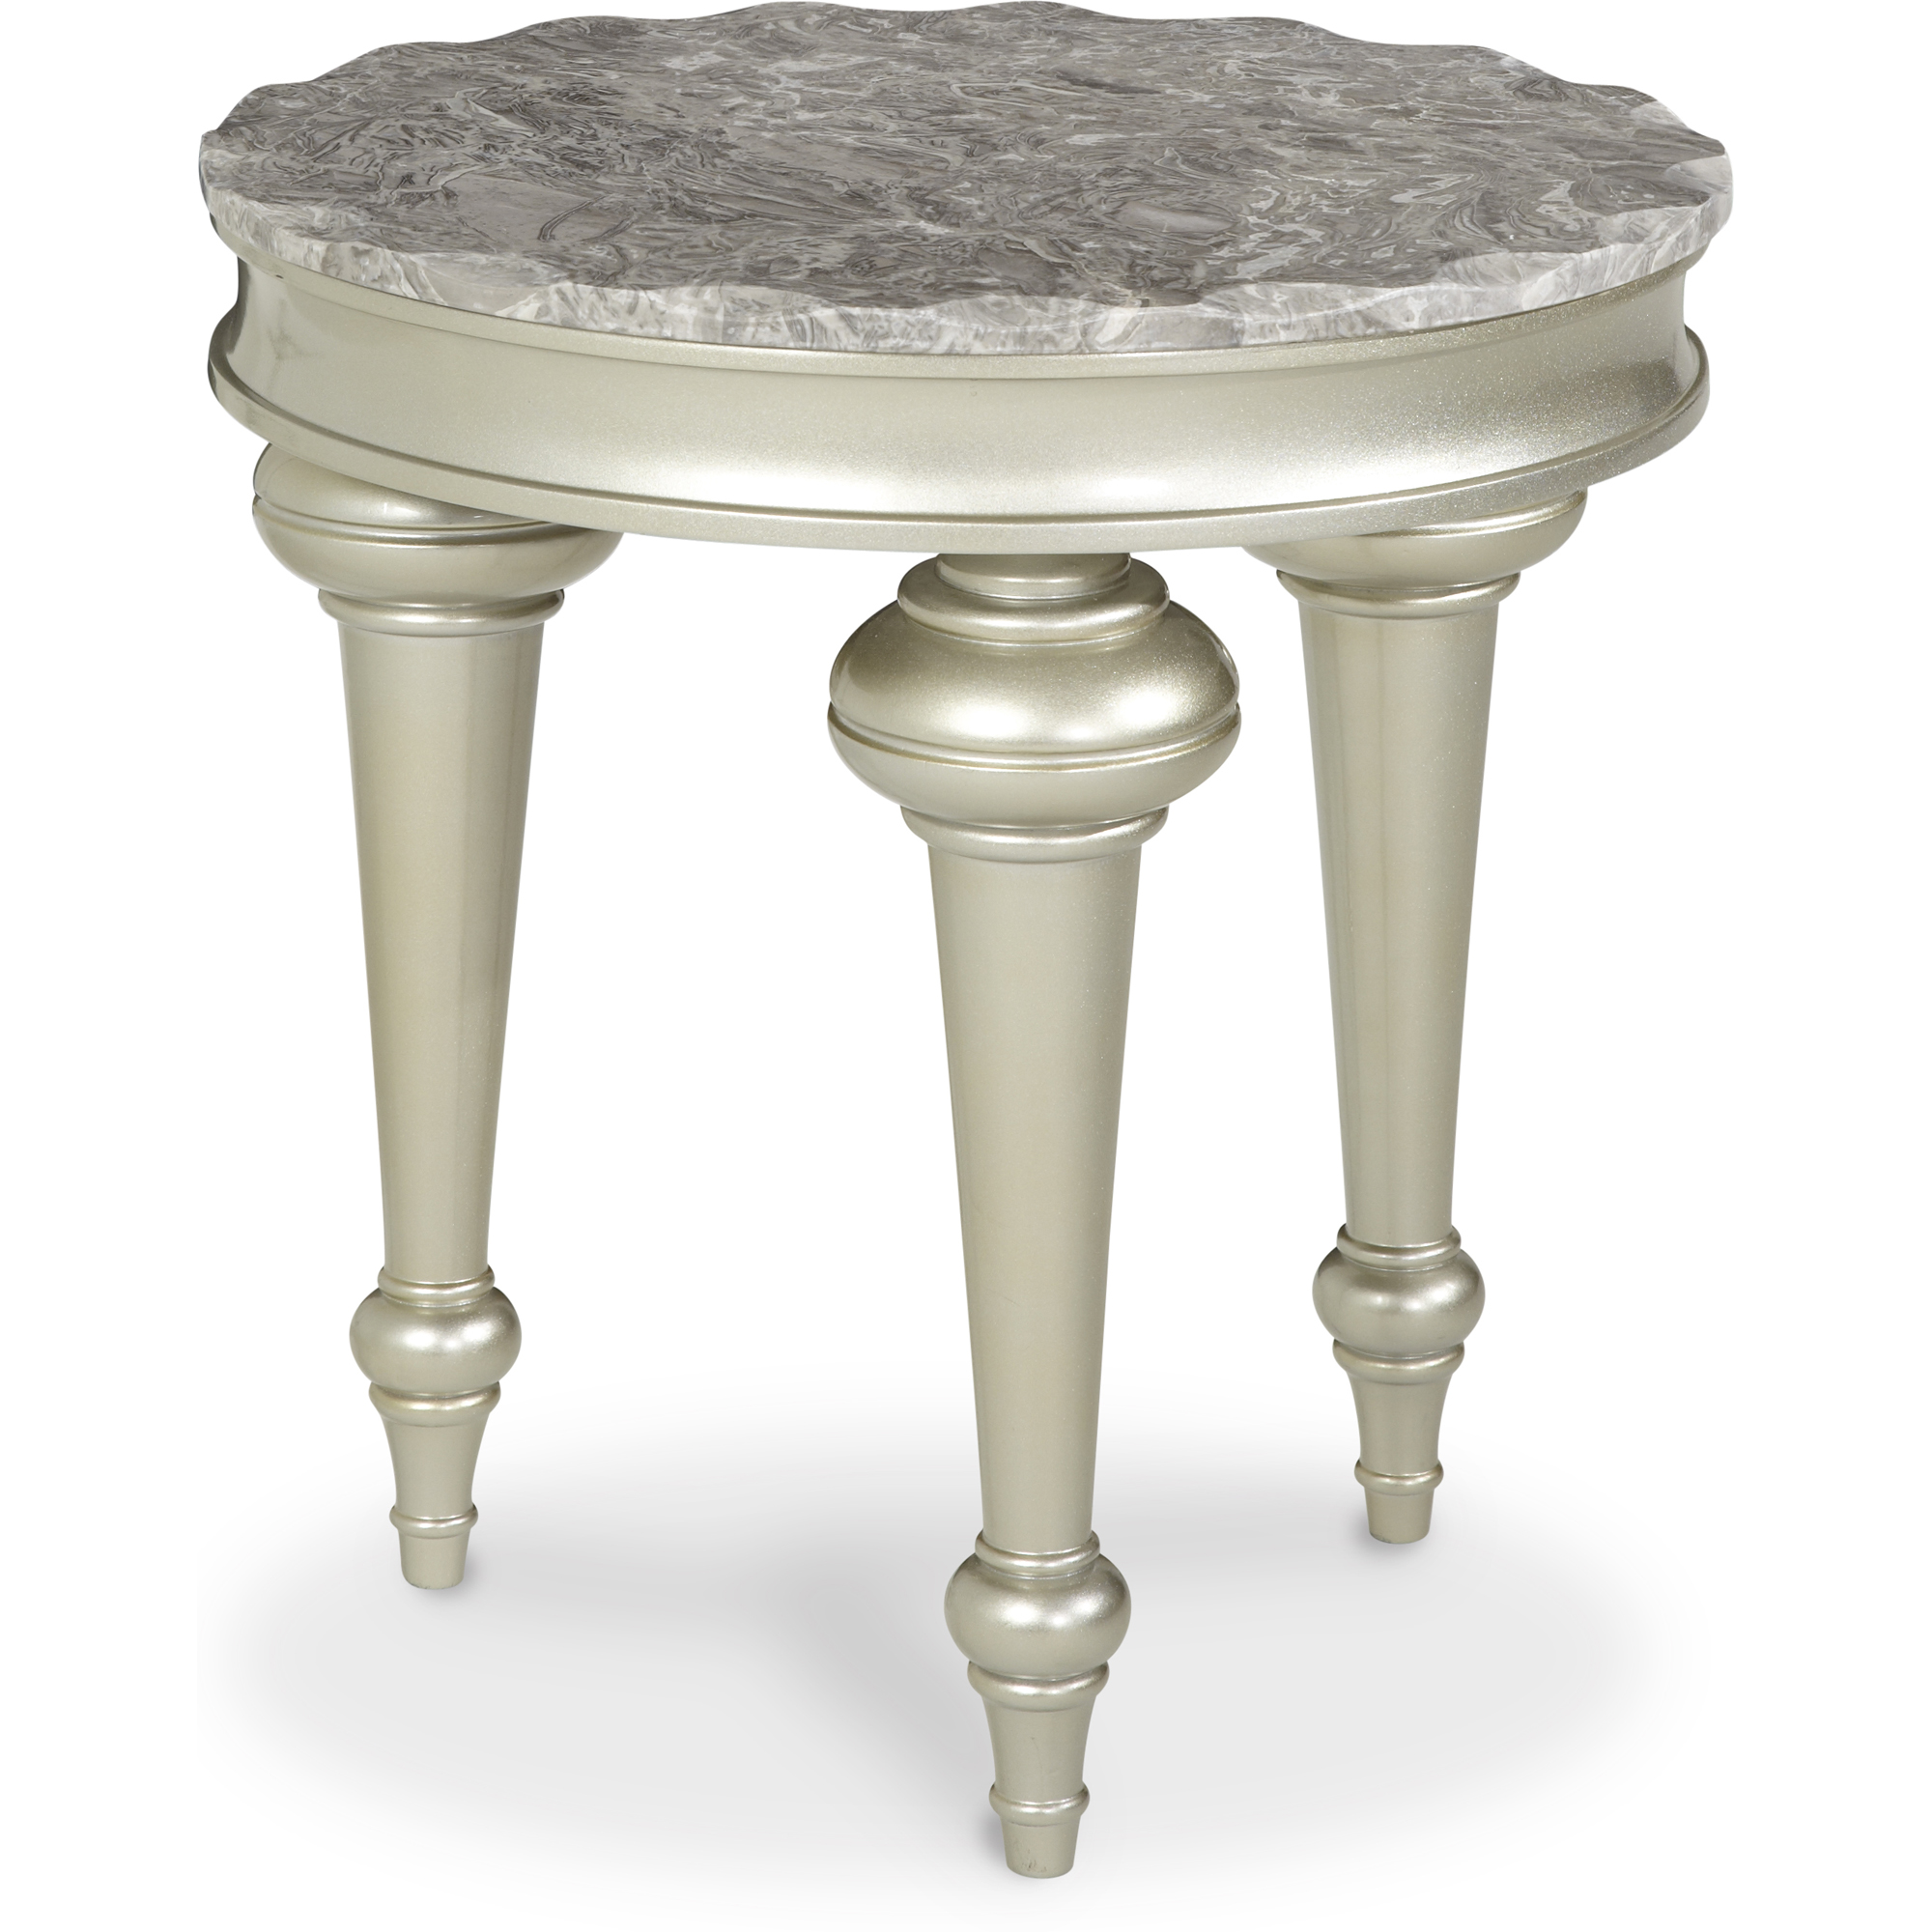 Hollywood Swank Chair Side Table in Cream | AICO | Home Gallery Stores